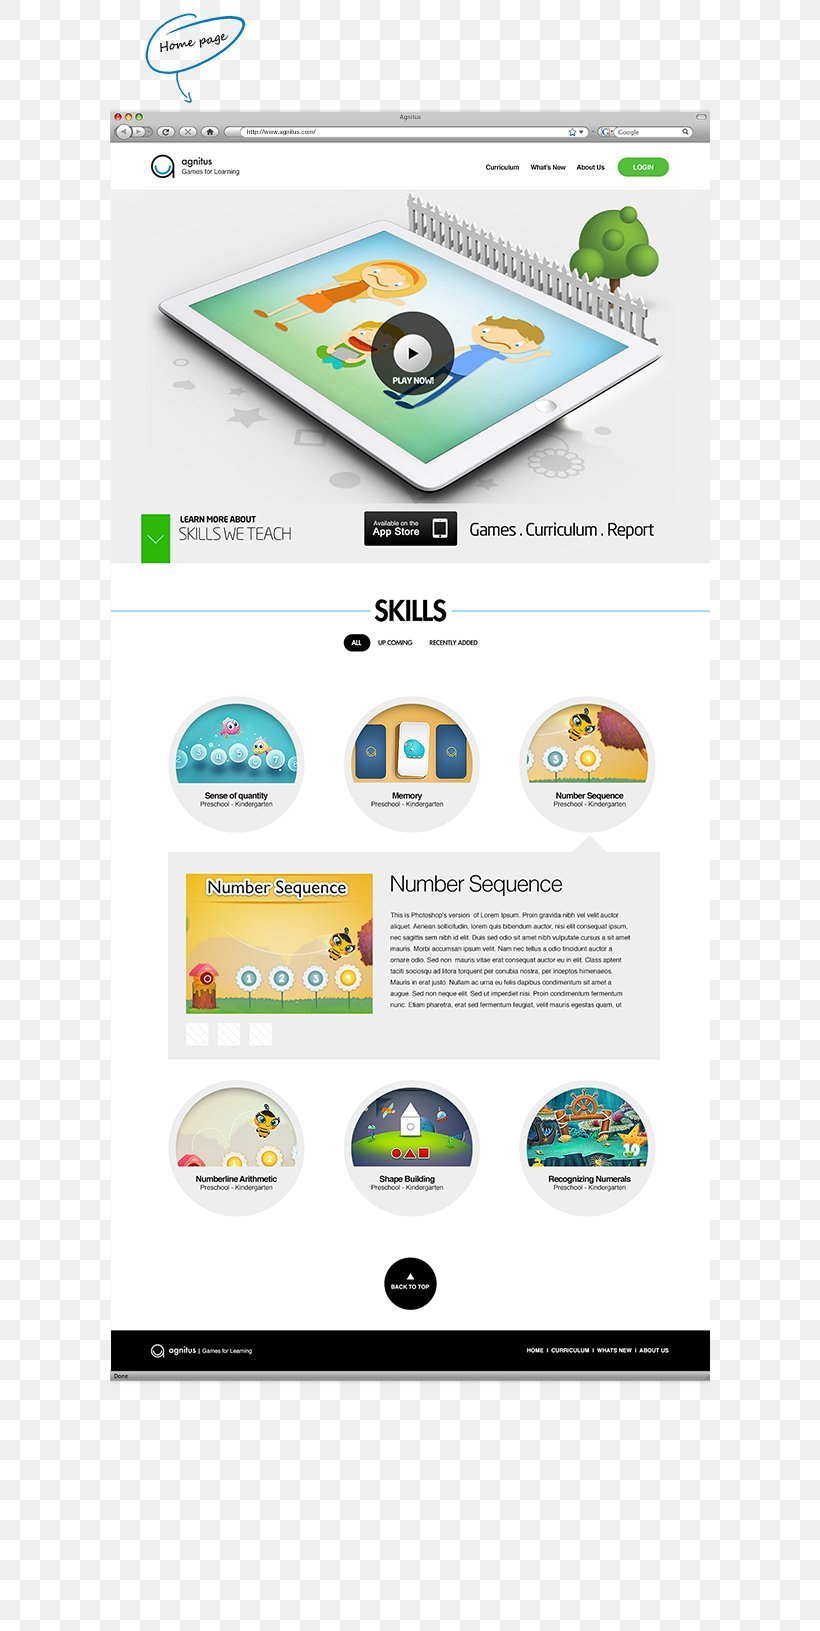 Agnitus Infographic Computer Software Logo Instructional Design Png 600x1631px Agnitus Android Area Brand Computer Software Download